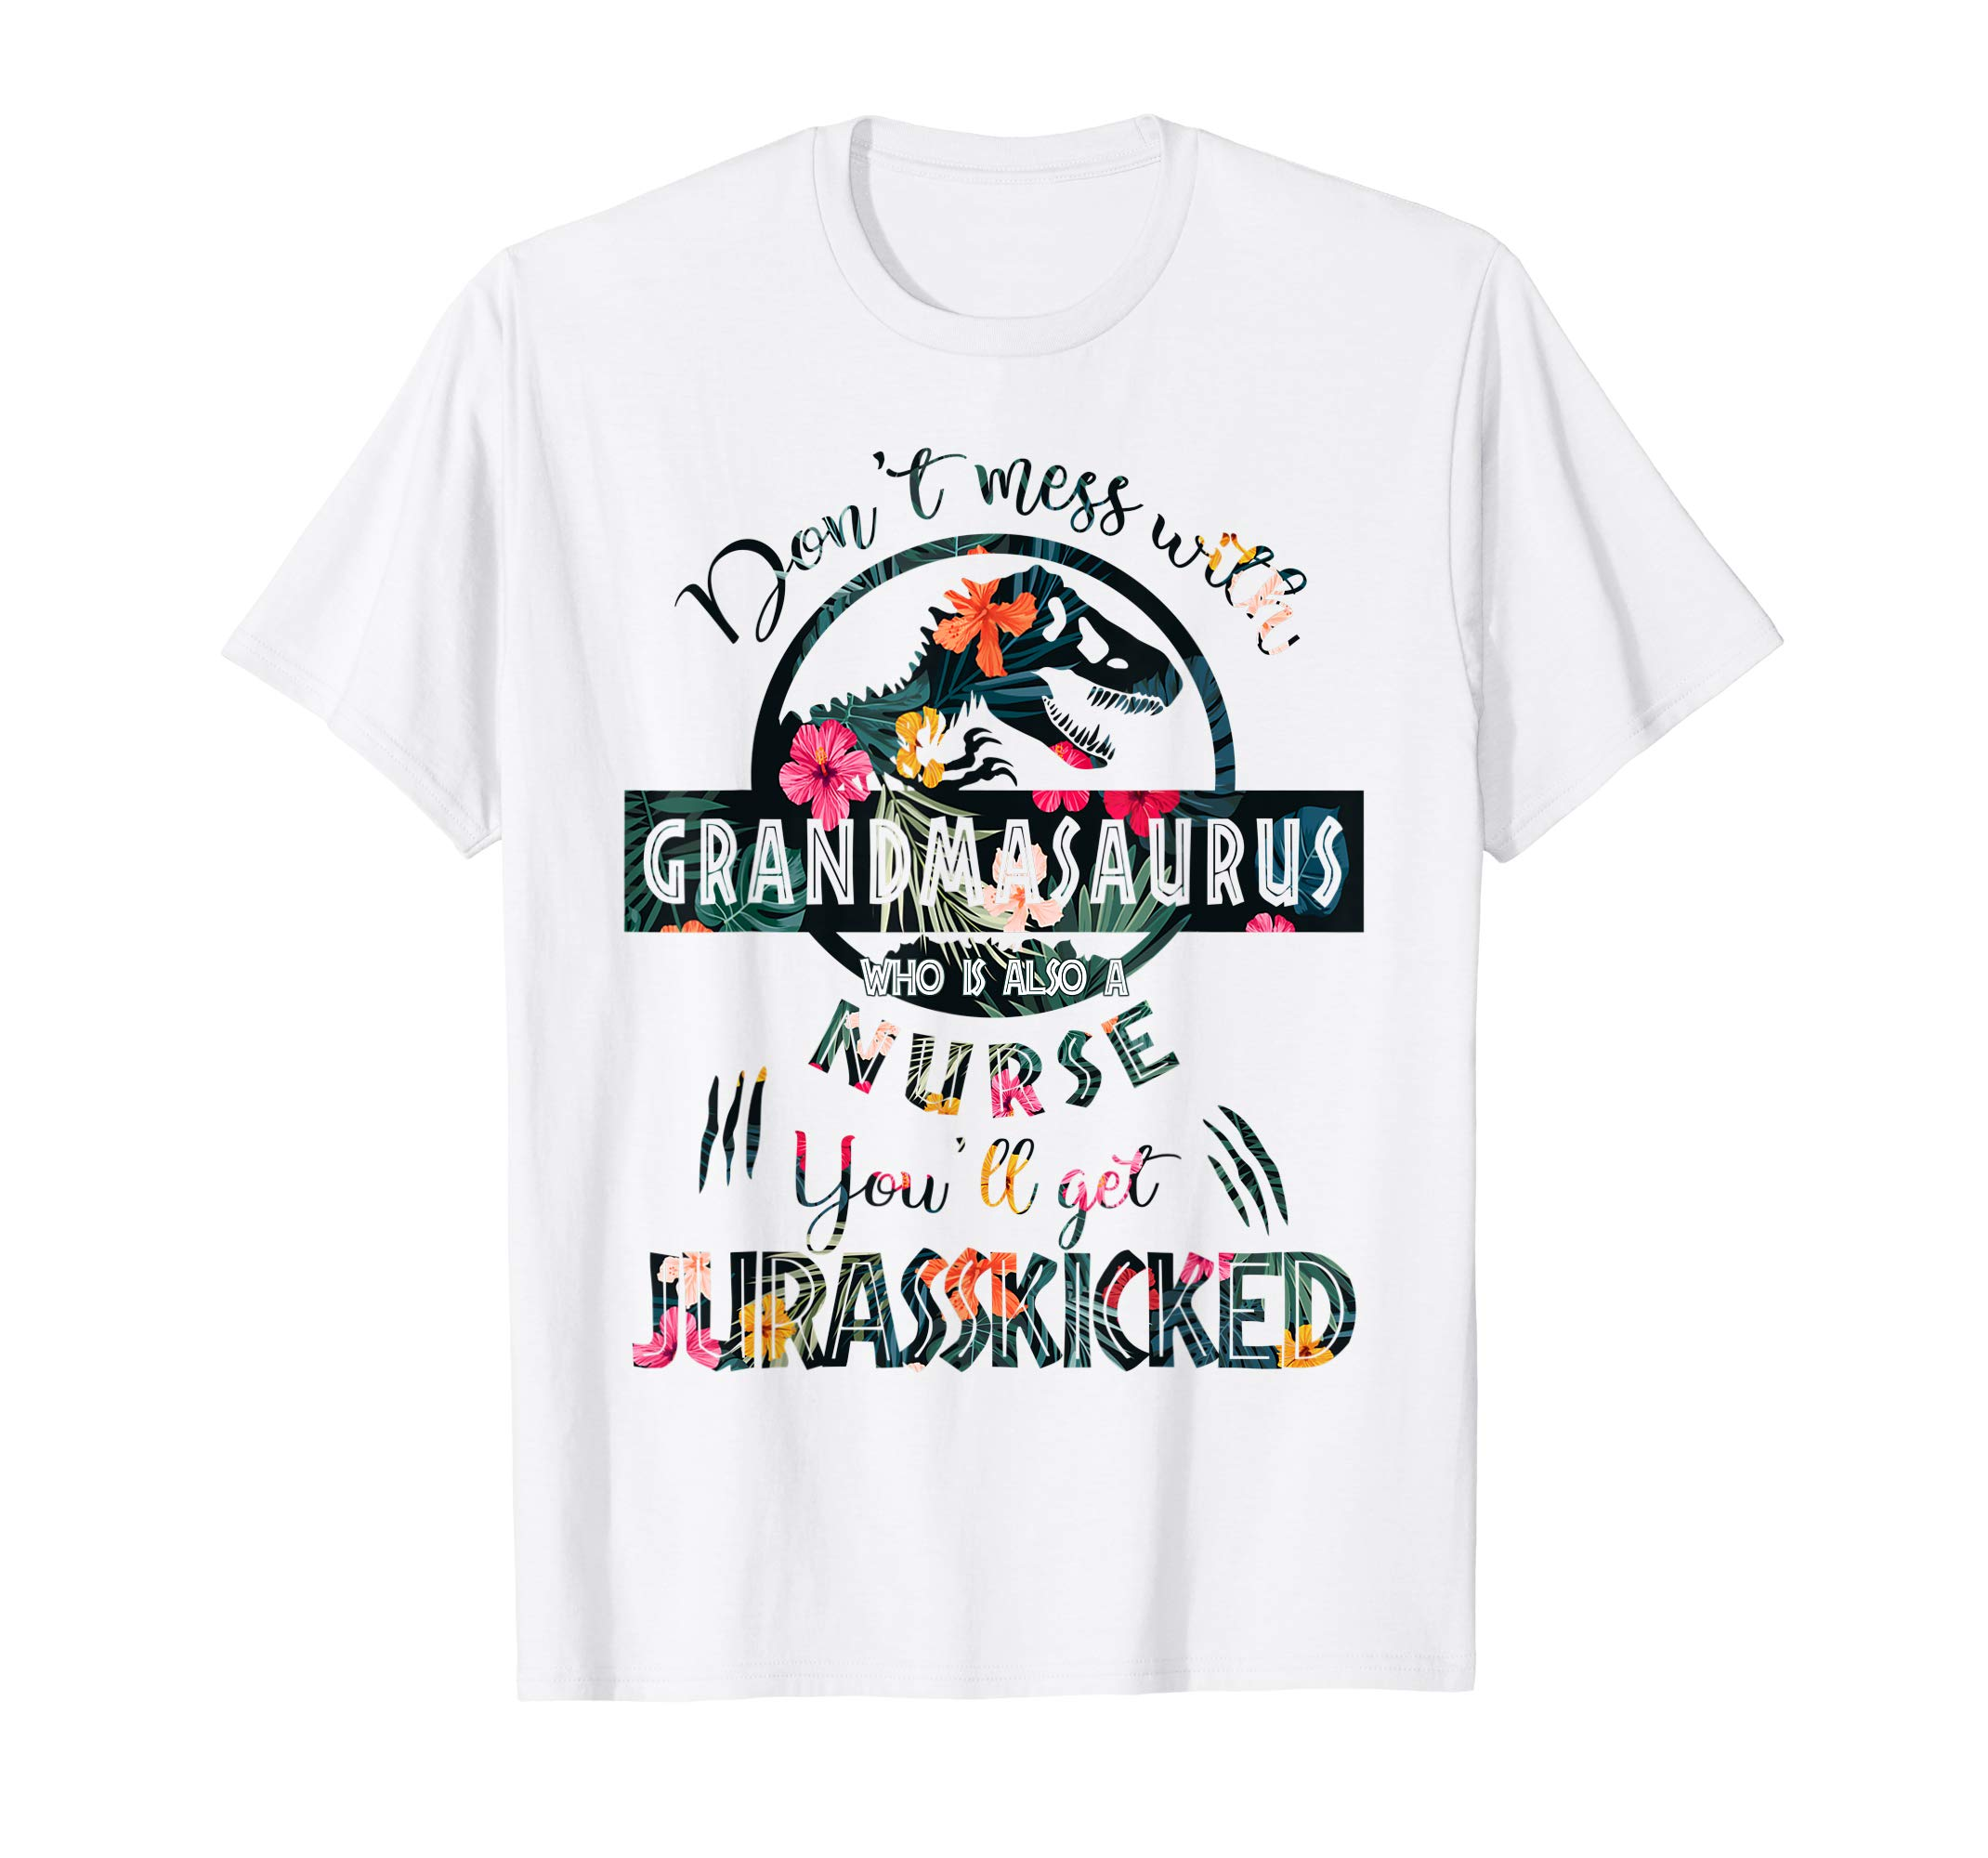 a4eb3609 Don't Mess With Grandmasaurus Who Is Also A Nurse T-shirt - YeyVibe.com